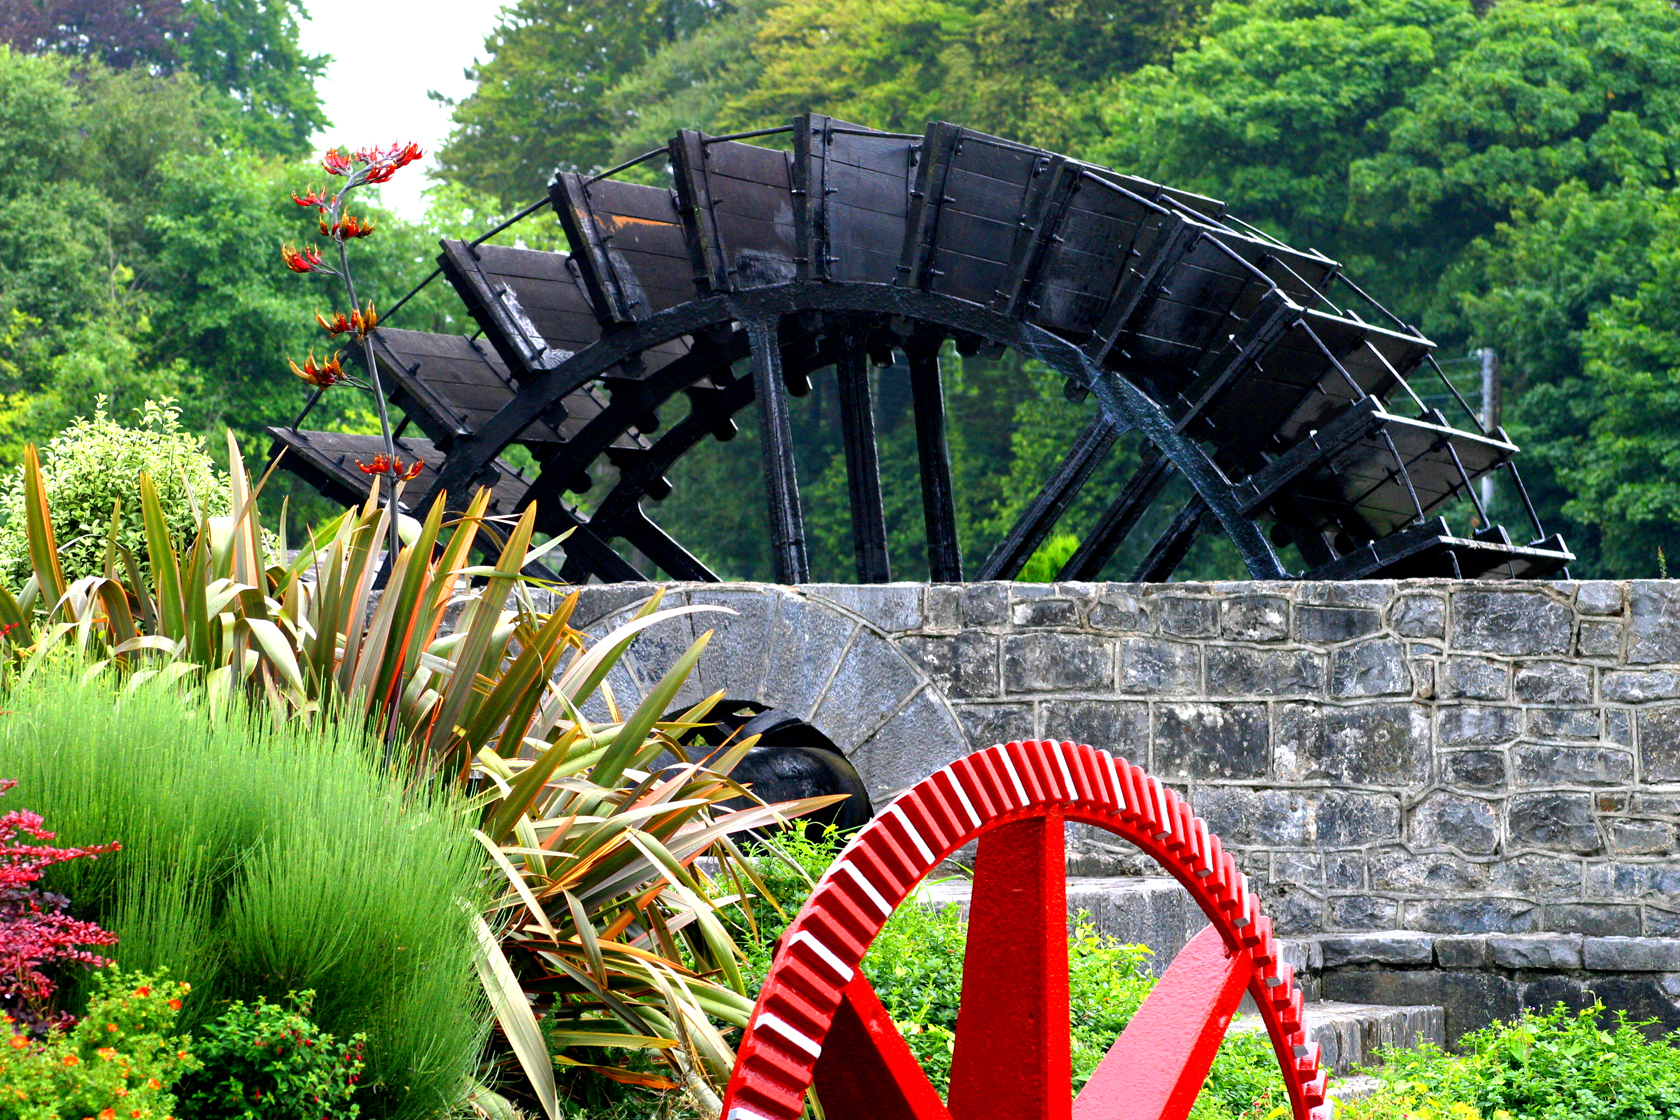 Ennis Mill Wheel by Raymond P. Doherty